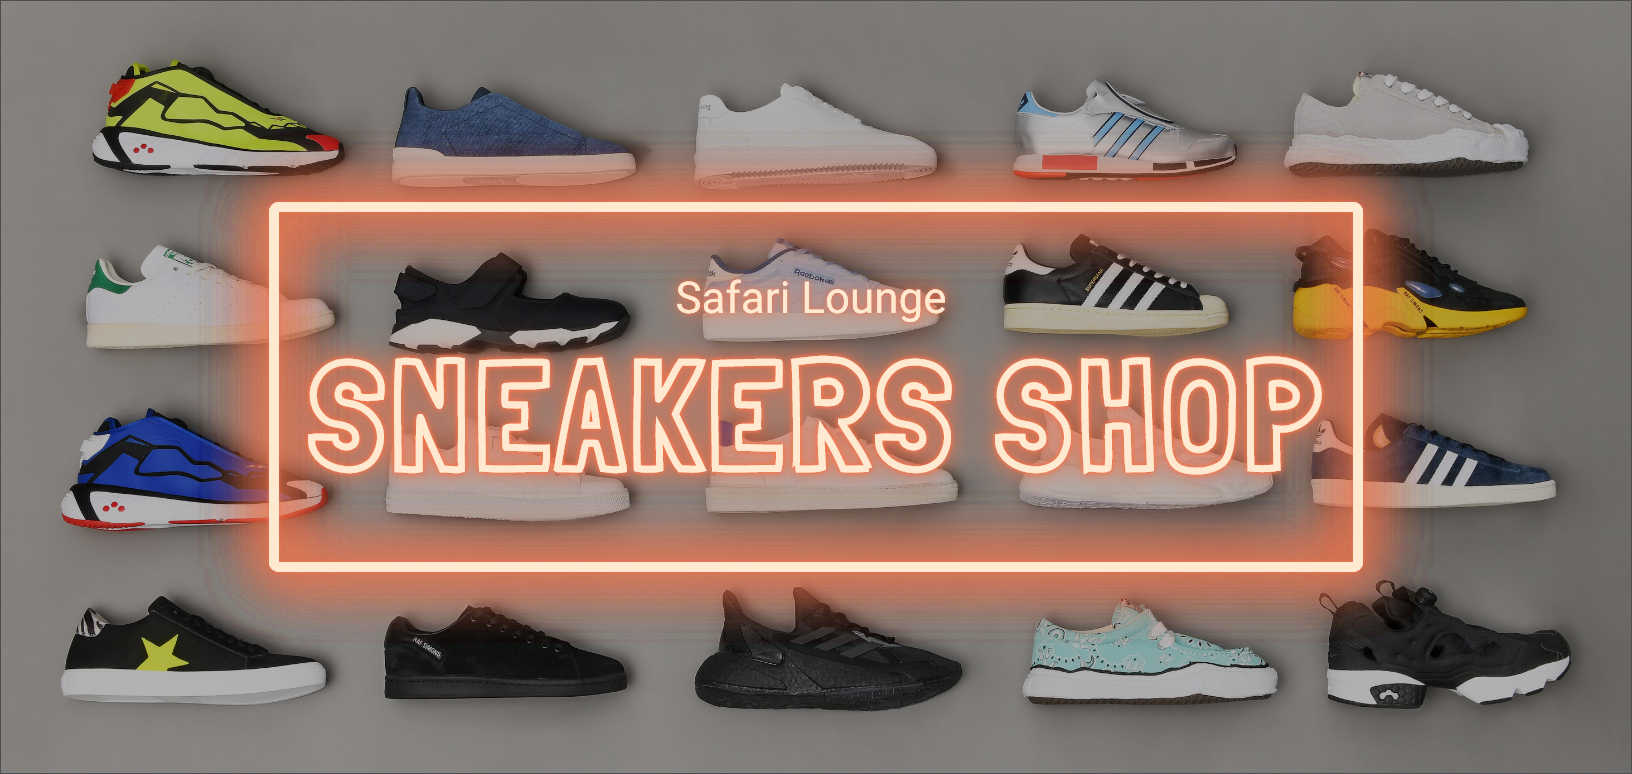 Safari Lounge SNEAKERS SHOP